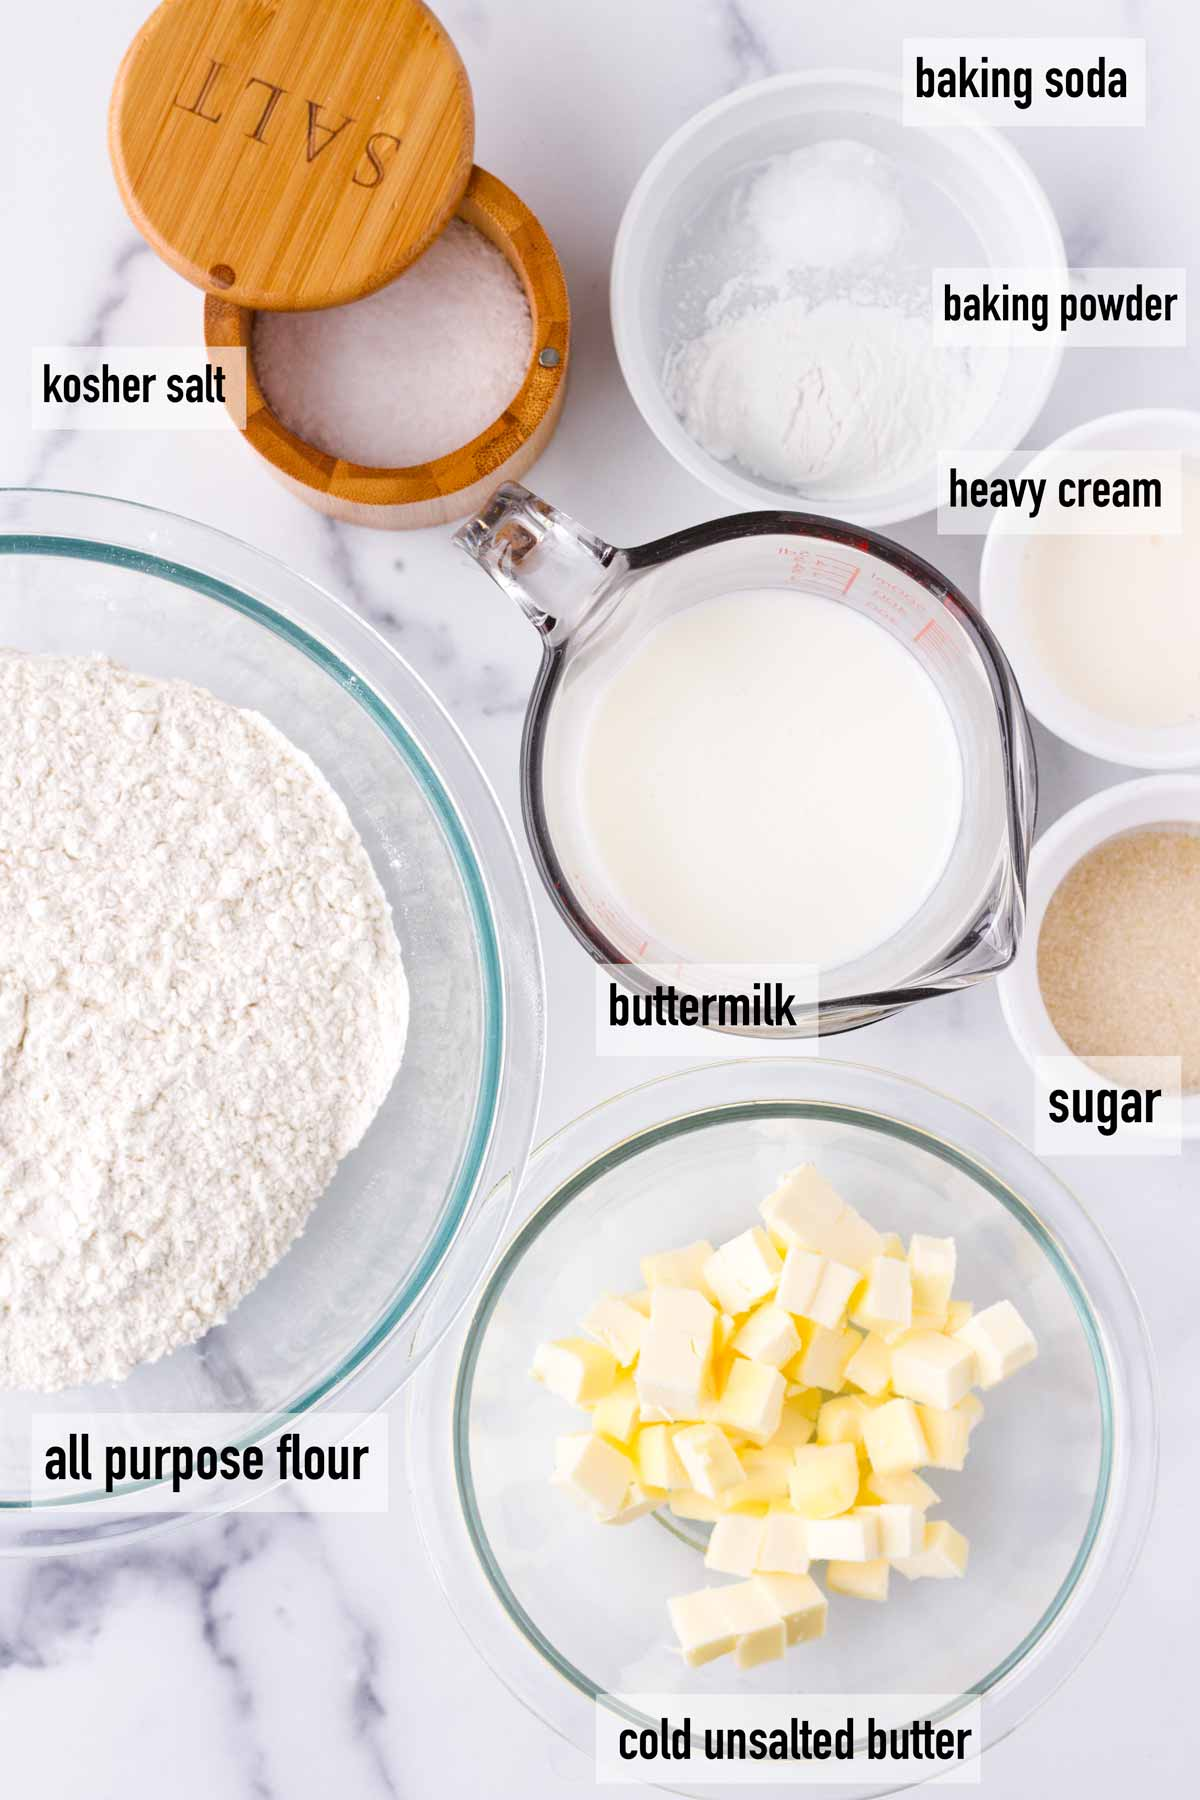 labeled ingredients to make buttermik biscuits